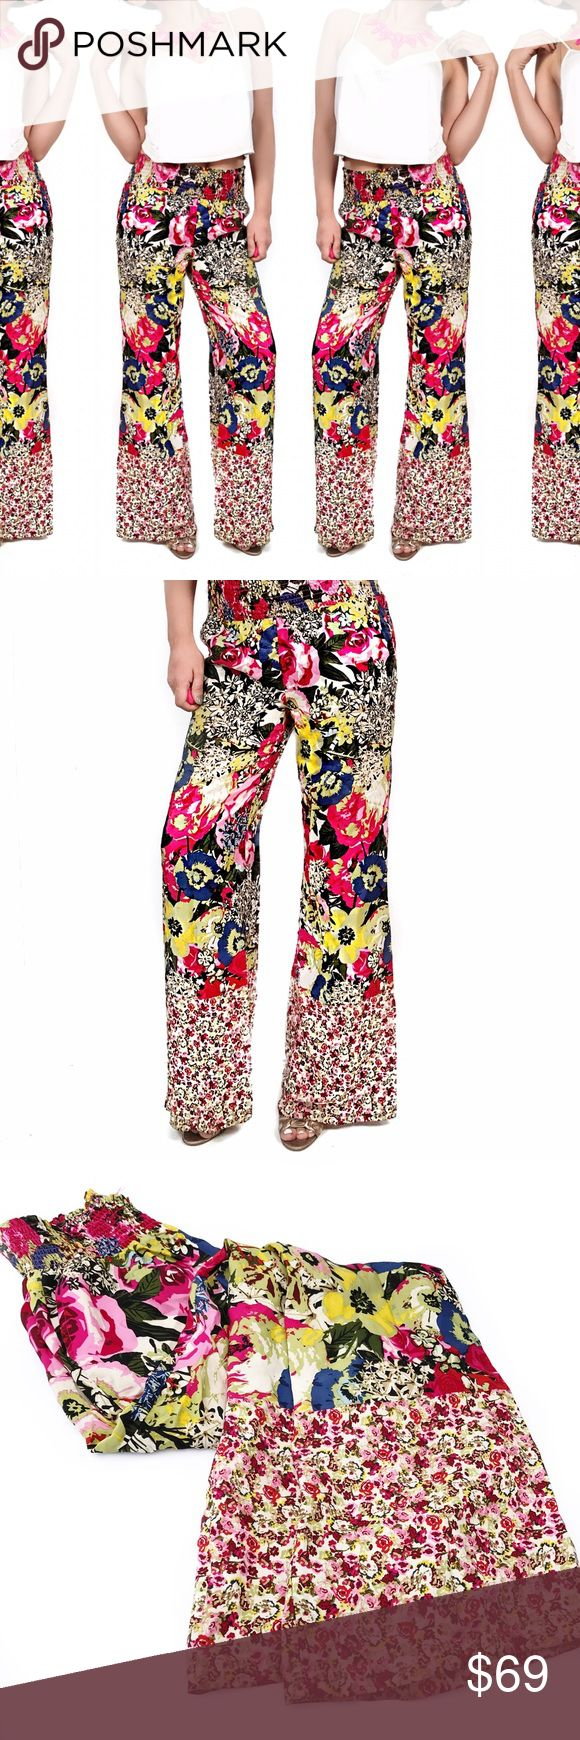 Anthropologie silk floral wide leg pants Super chic! No trades. Always open to offers. All photos are of actual item Anthropologie Pants Wide Leg